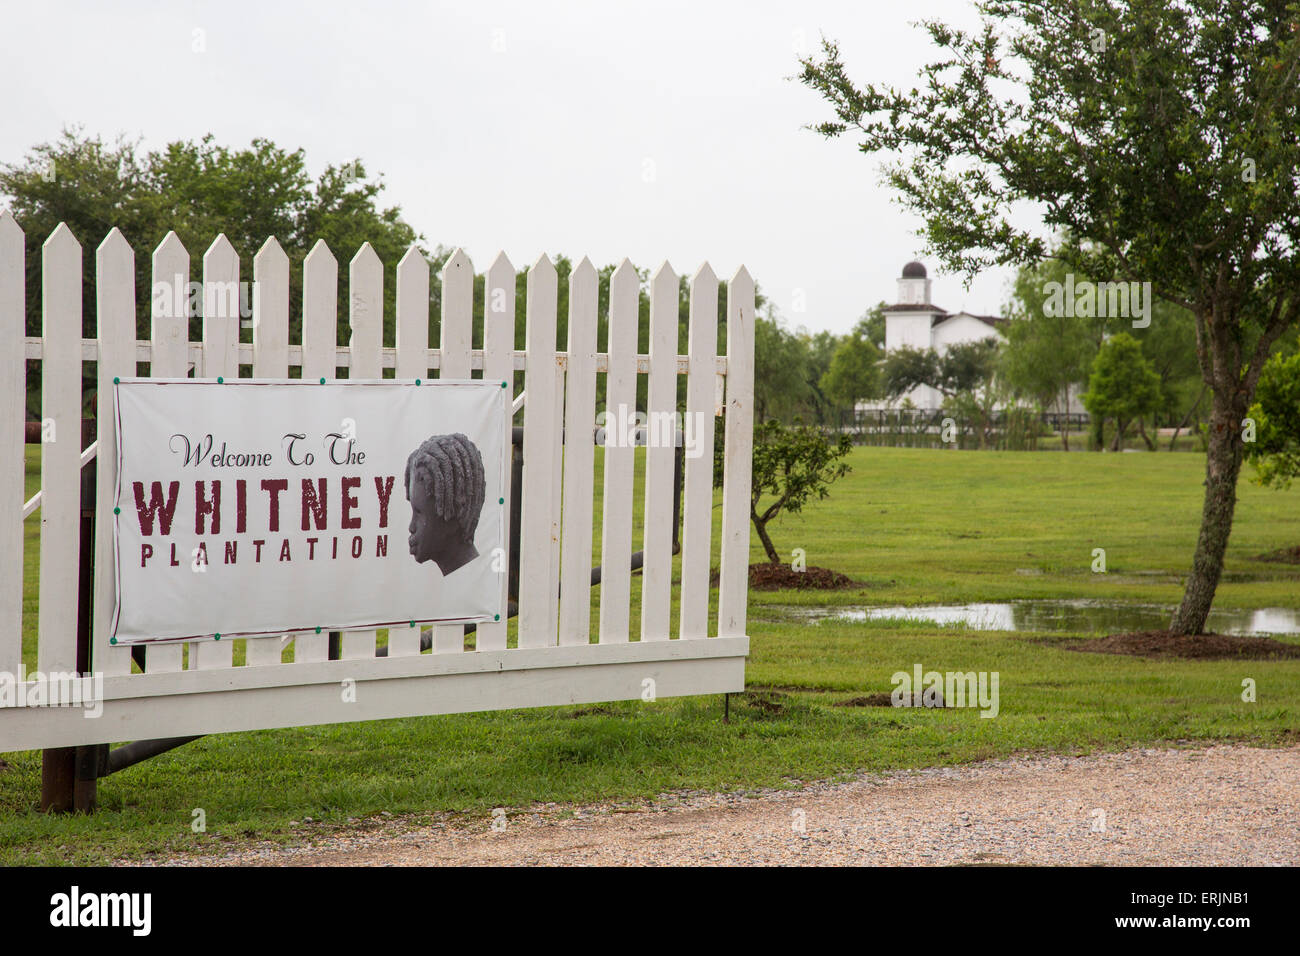 Wallace, Louisiana - The Whitney Plantation, a sugar plantation that has been turned into a museum to tell the story - Stock Image